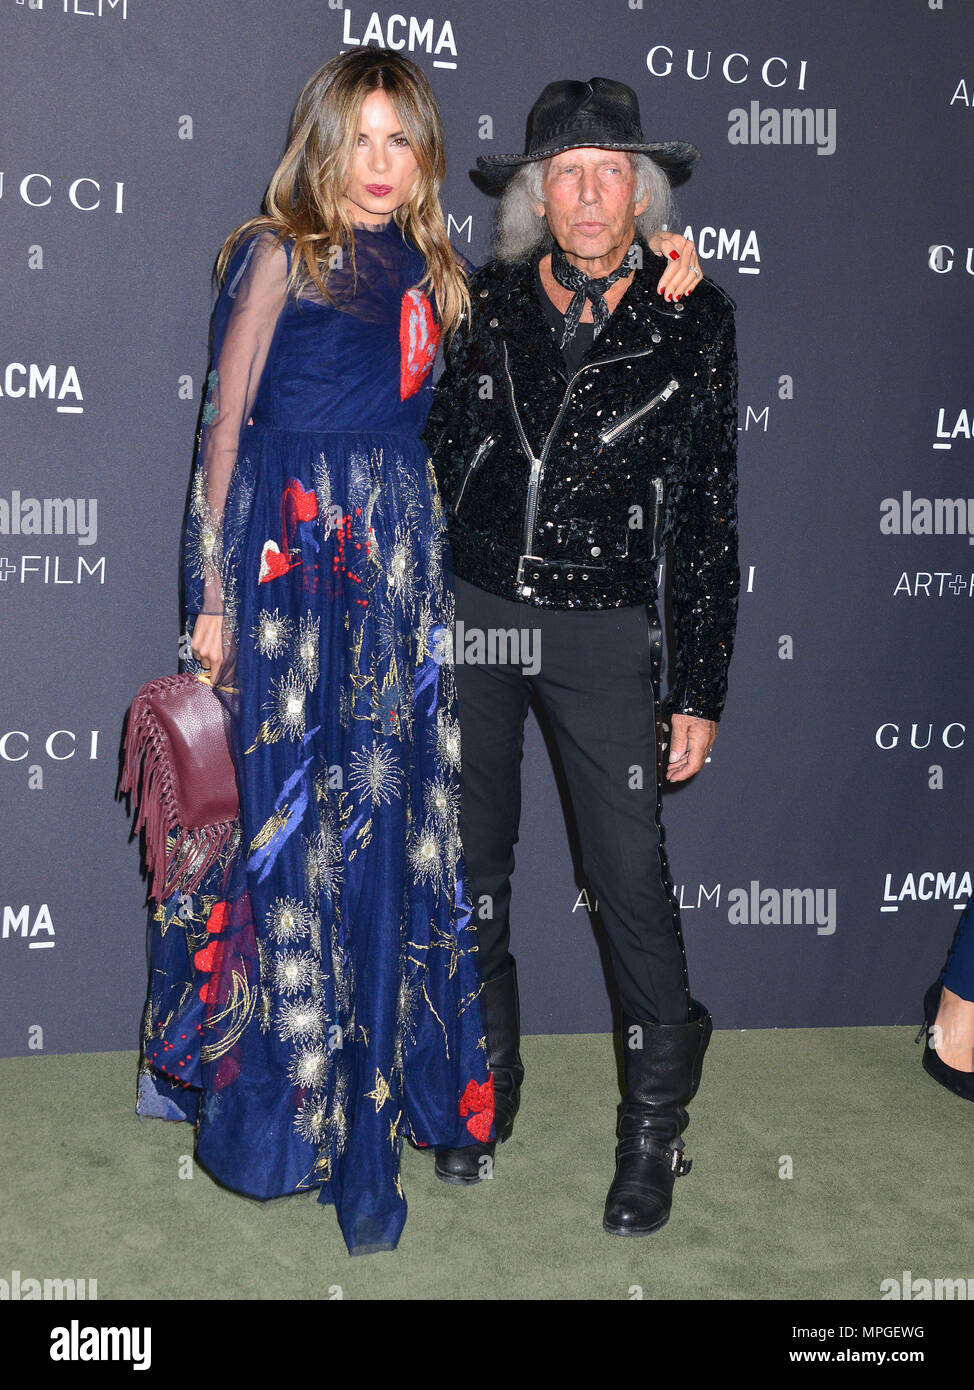 Erica Pelosini, James Goldstein 301 at the 2016 LACMA Art +